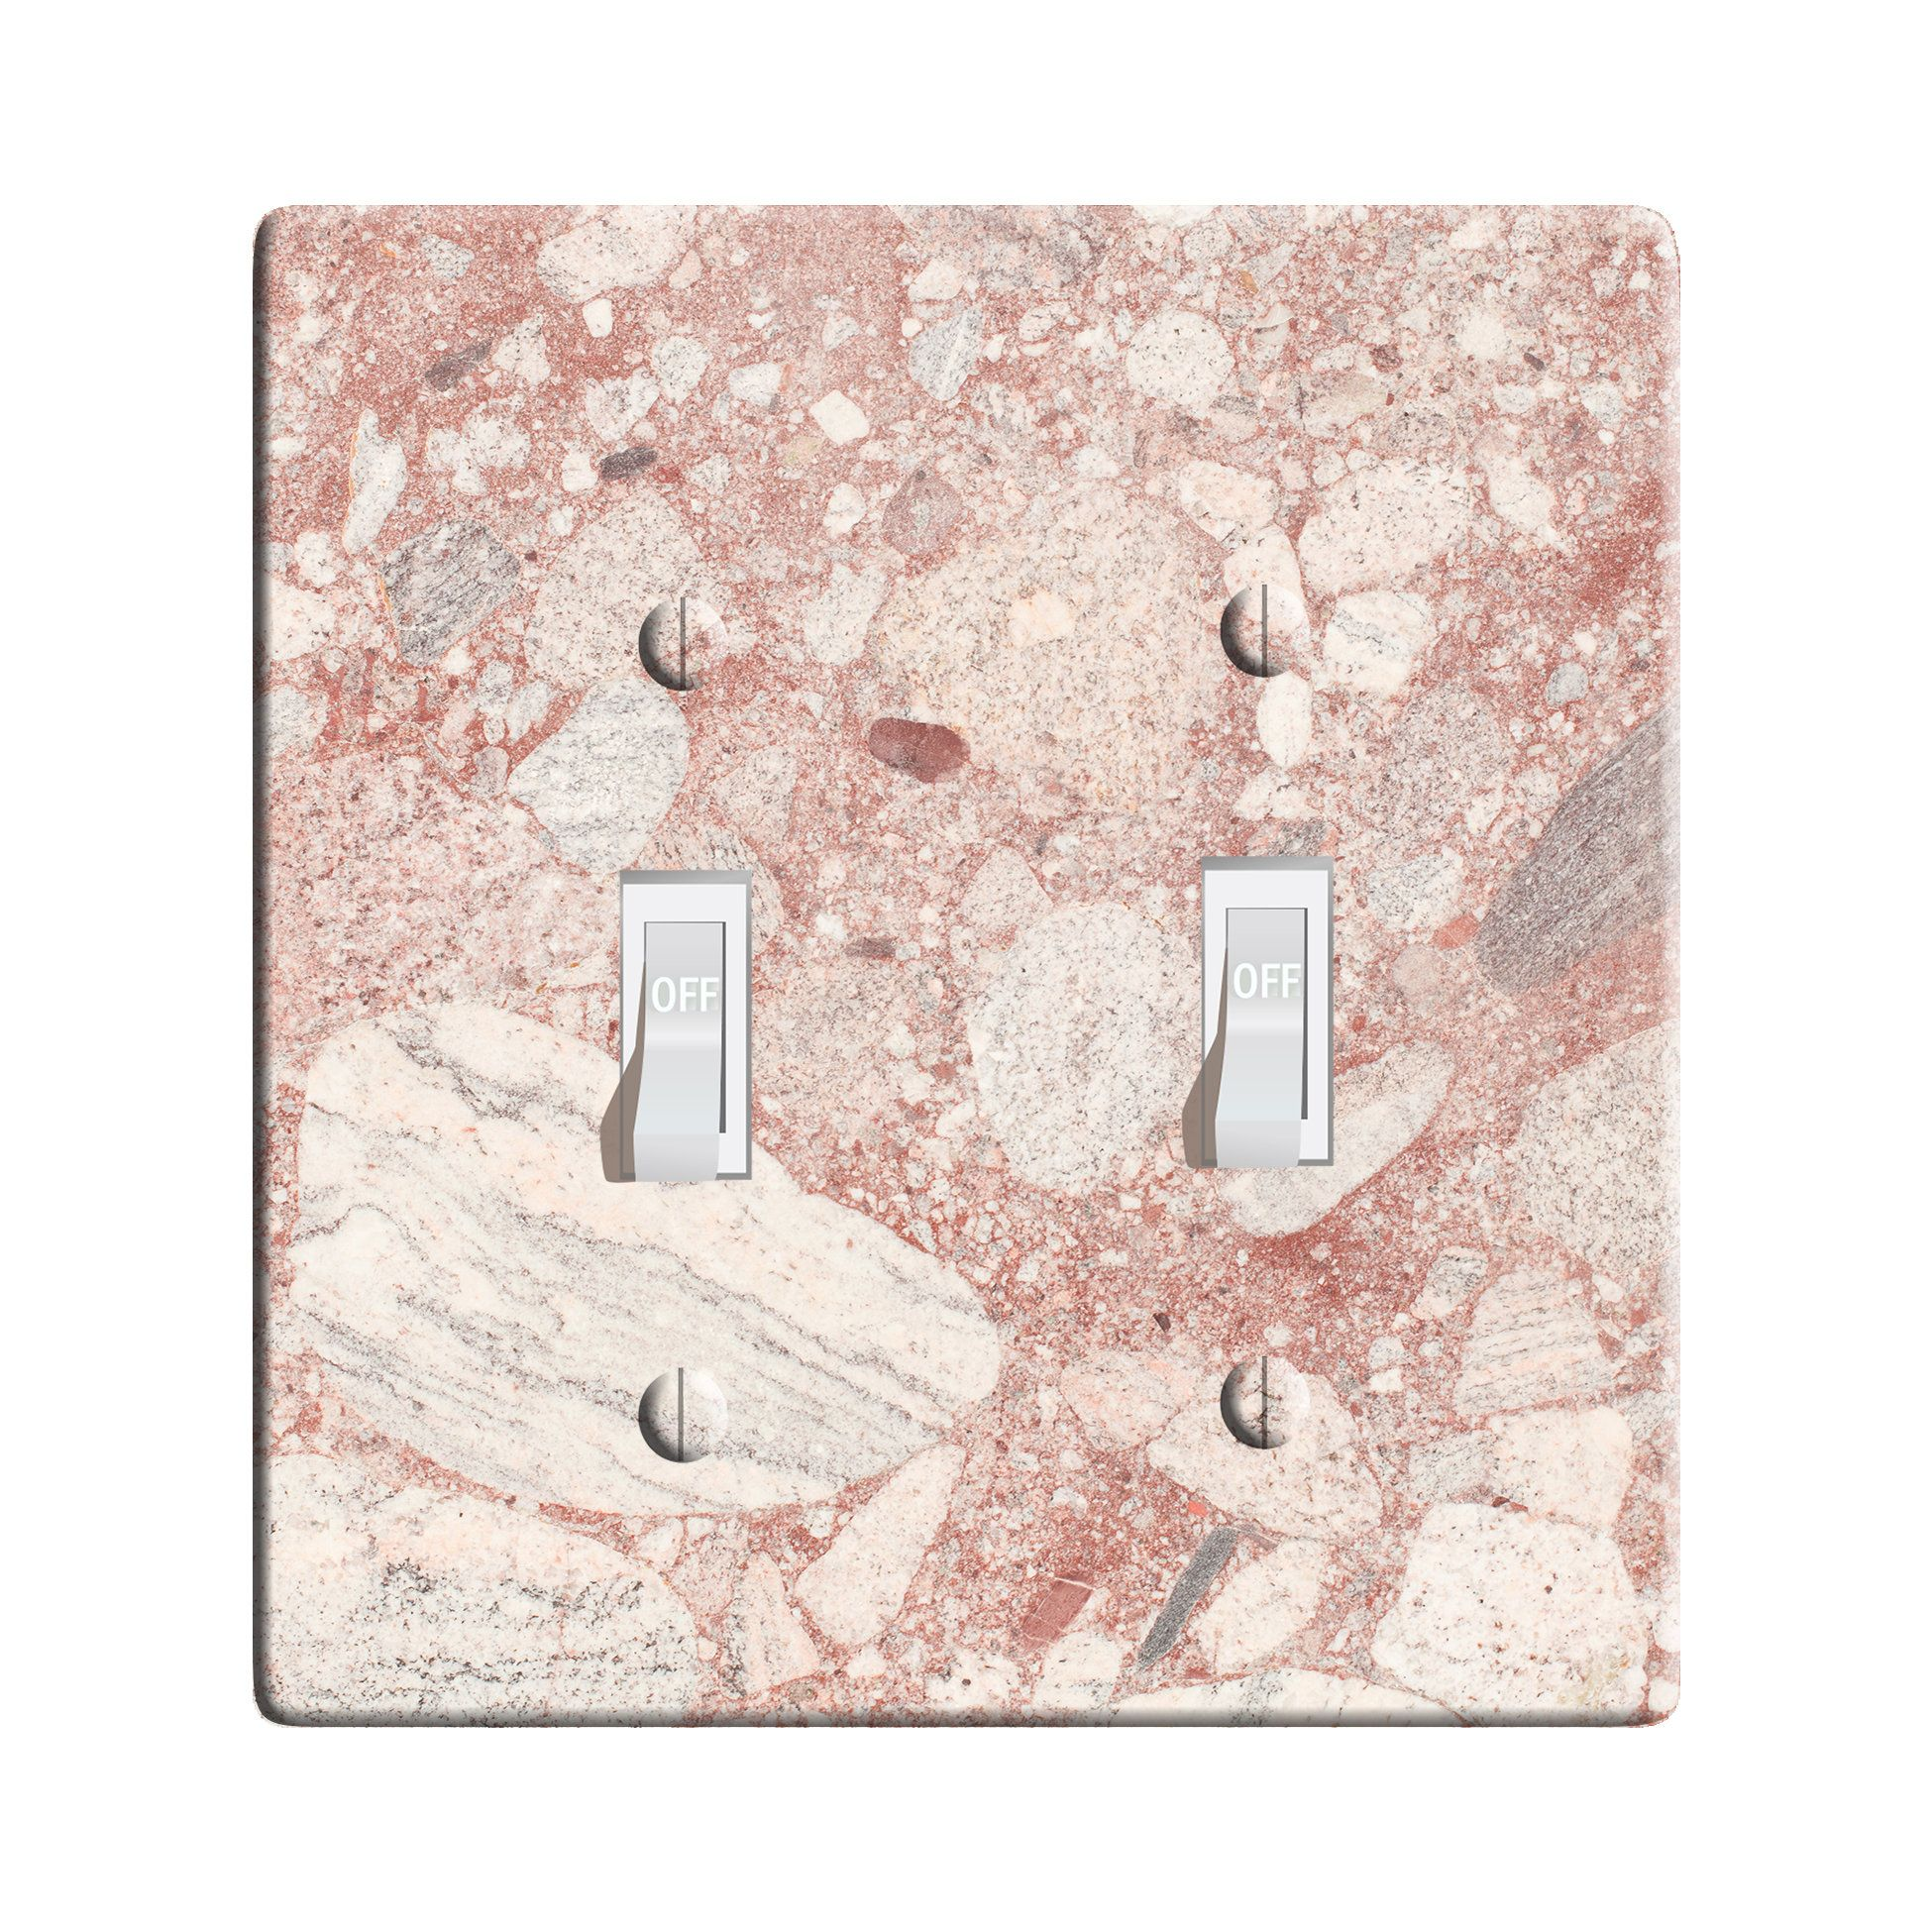 Pin On Home Decor Switch Plates Outlet Covers